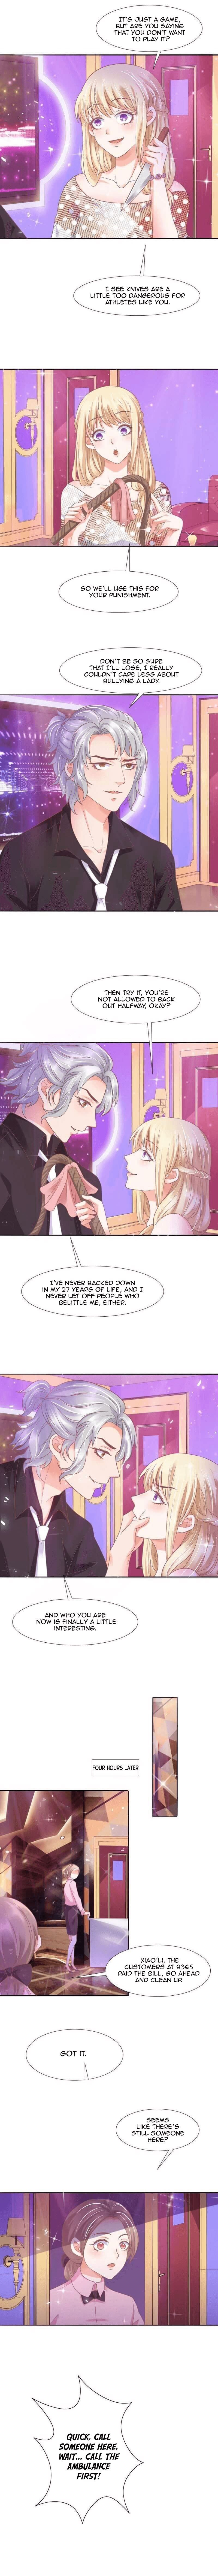 Prince Charming Has His Eyes on Me - chapter 47 - #3